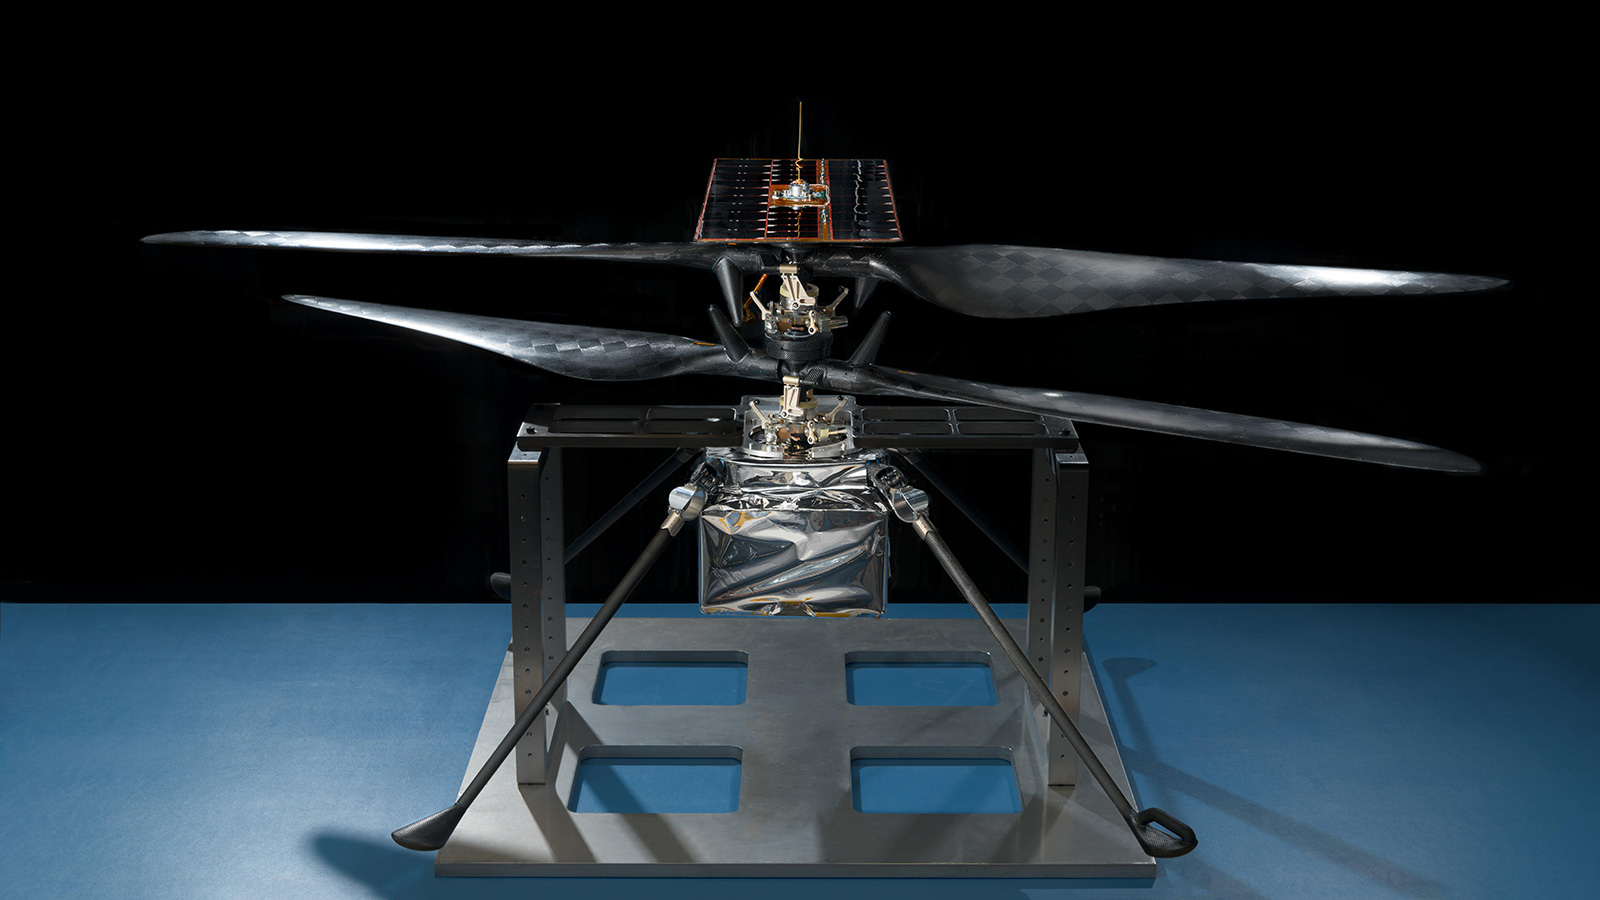 NASA's Mars Helicopter passes key tests